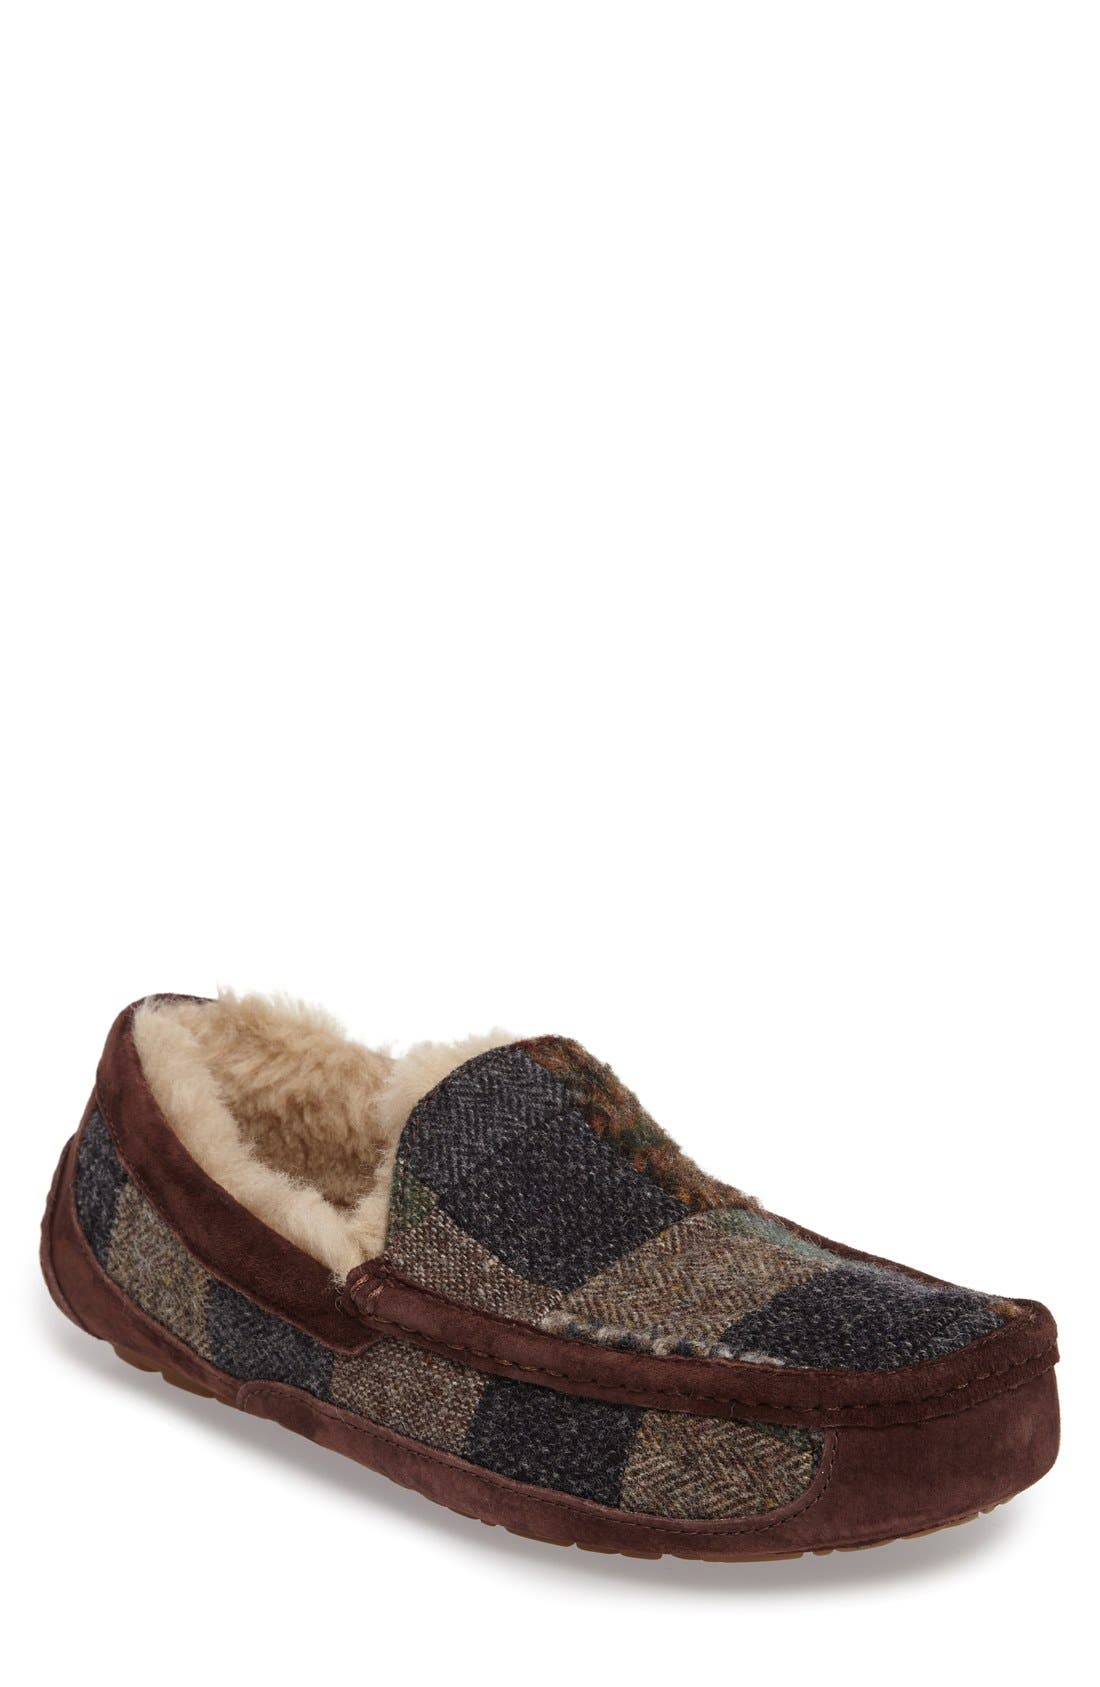 Alternate Image 1 Selected - UGG® Ascot UGGpure Slipper (Men)